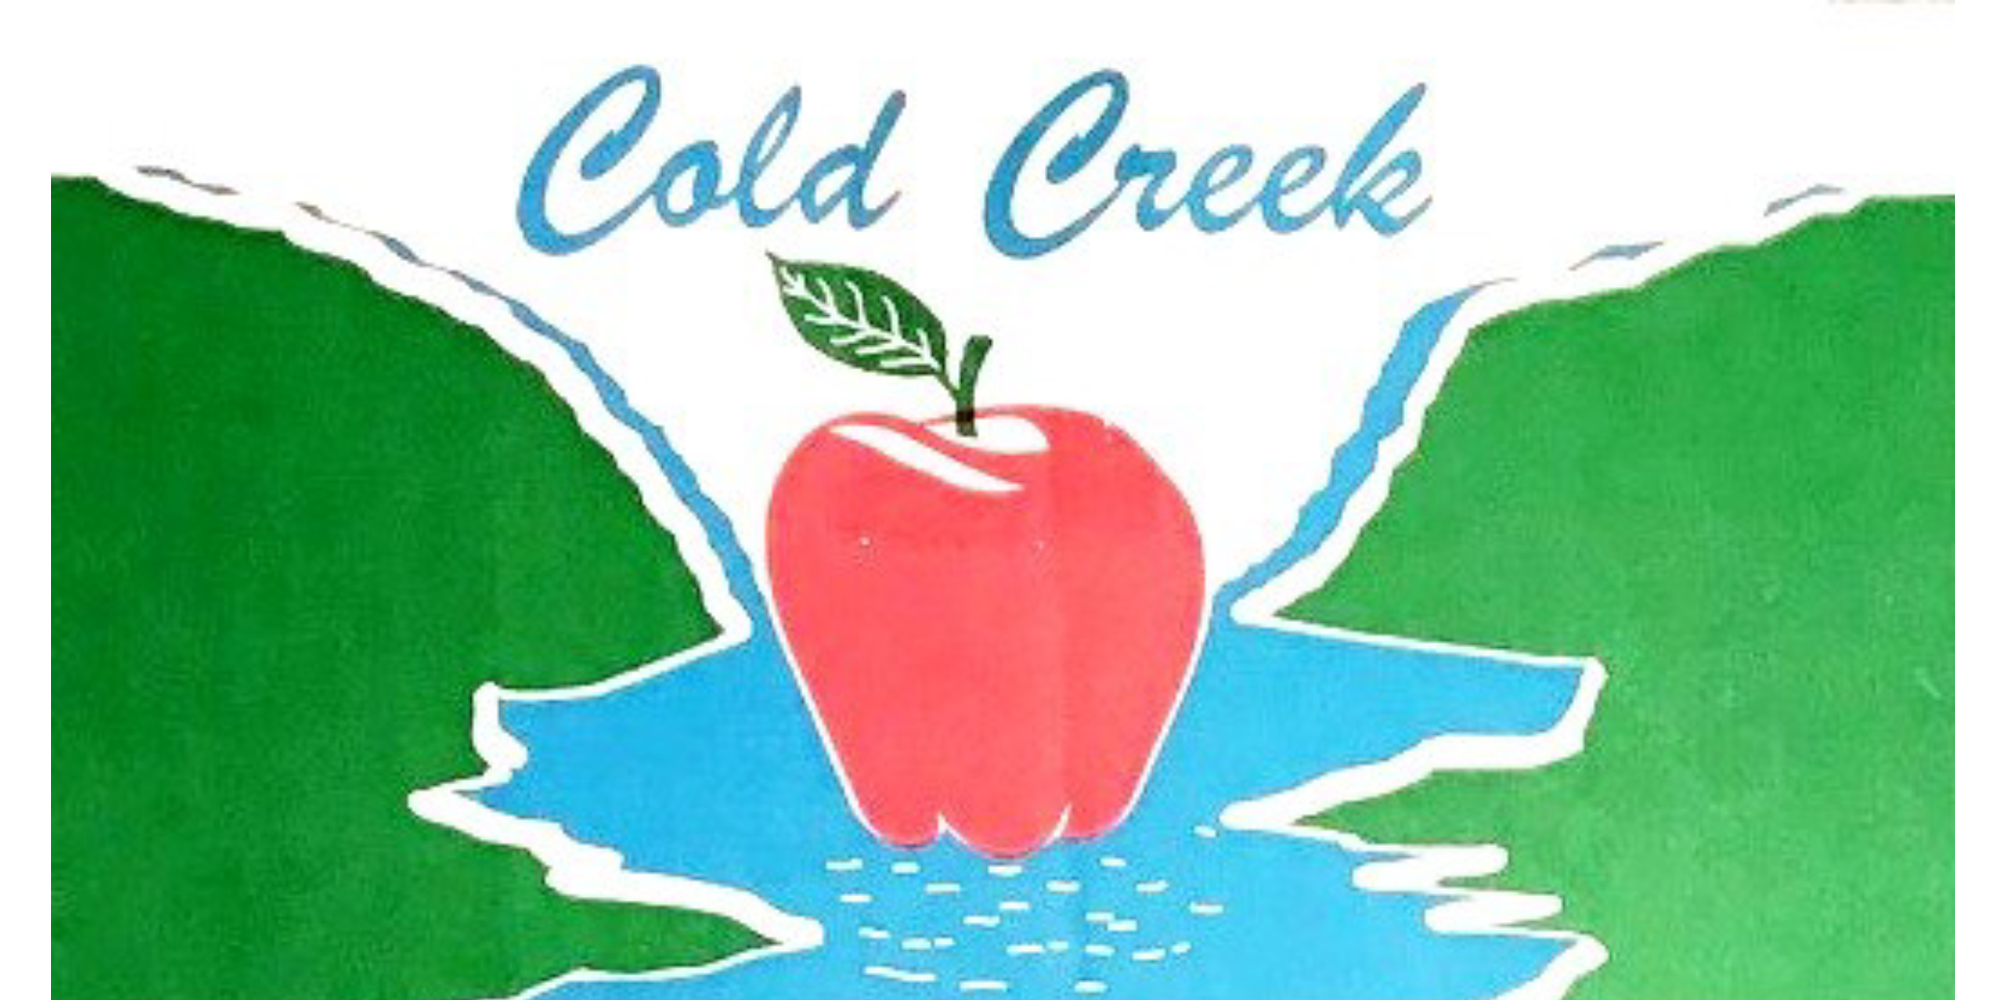 7-coldcreek.png